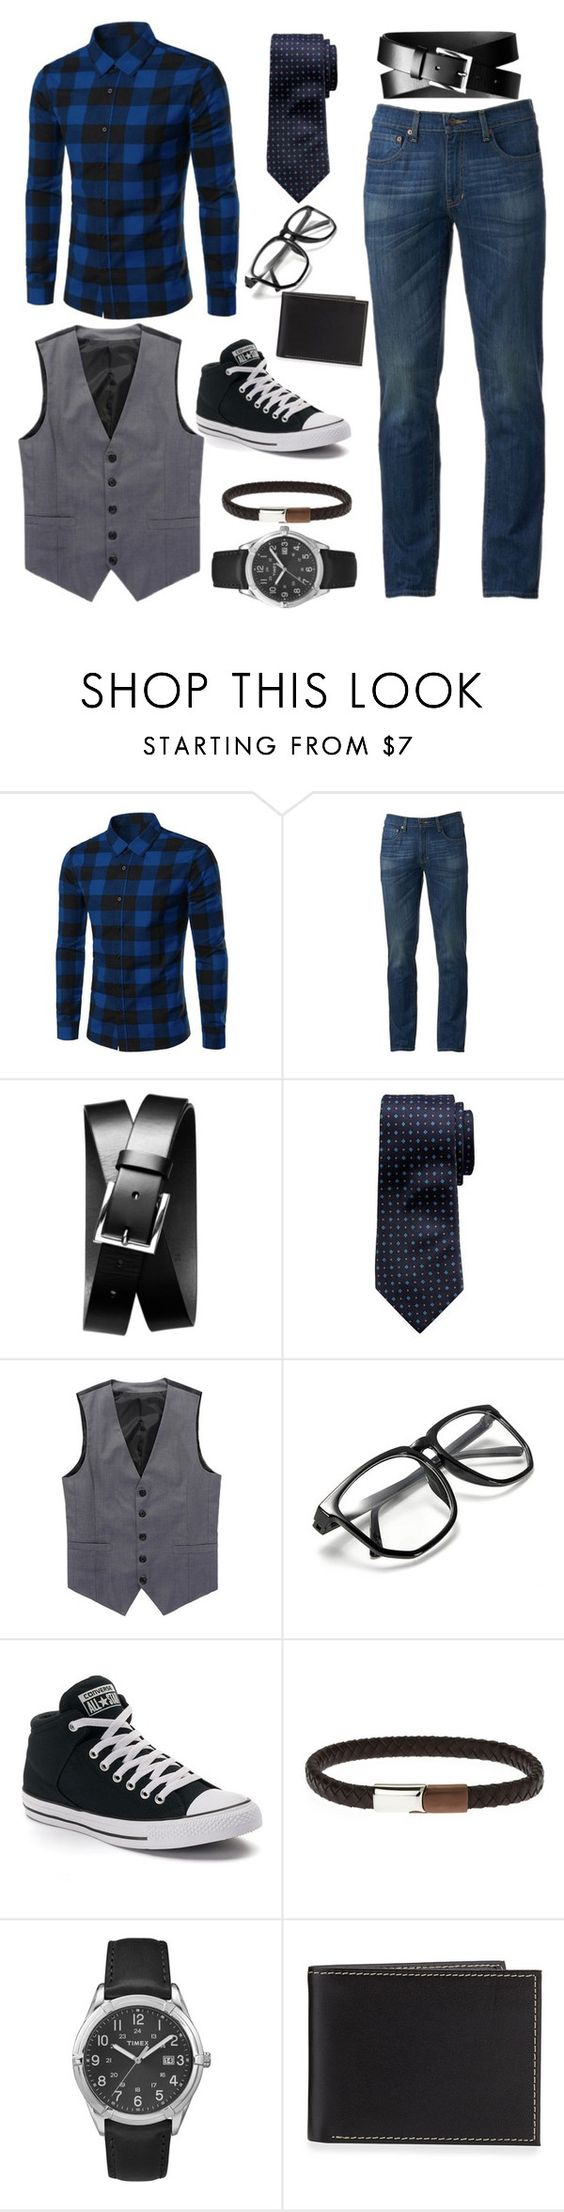 """Date Night"" by ch120684 ❤ liked on Polyvore featuring Urban Pipeline, Banana Republic, Converse, Timex, Neiman Marcus, men's fashion and menswear"